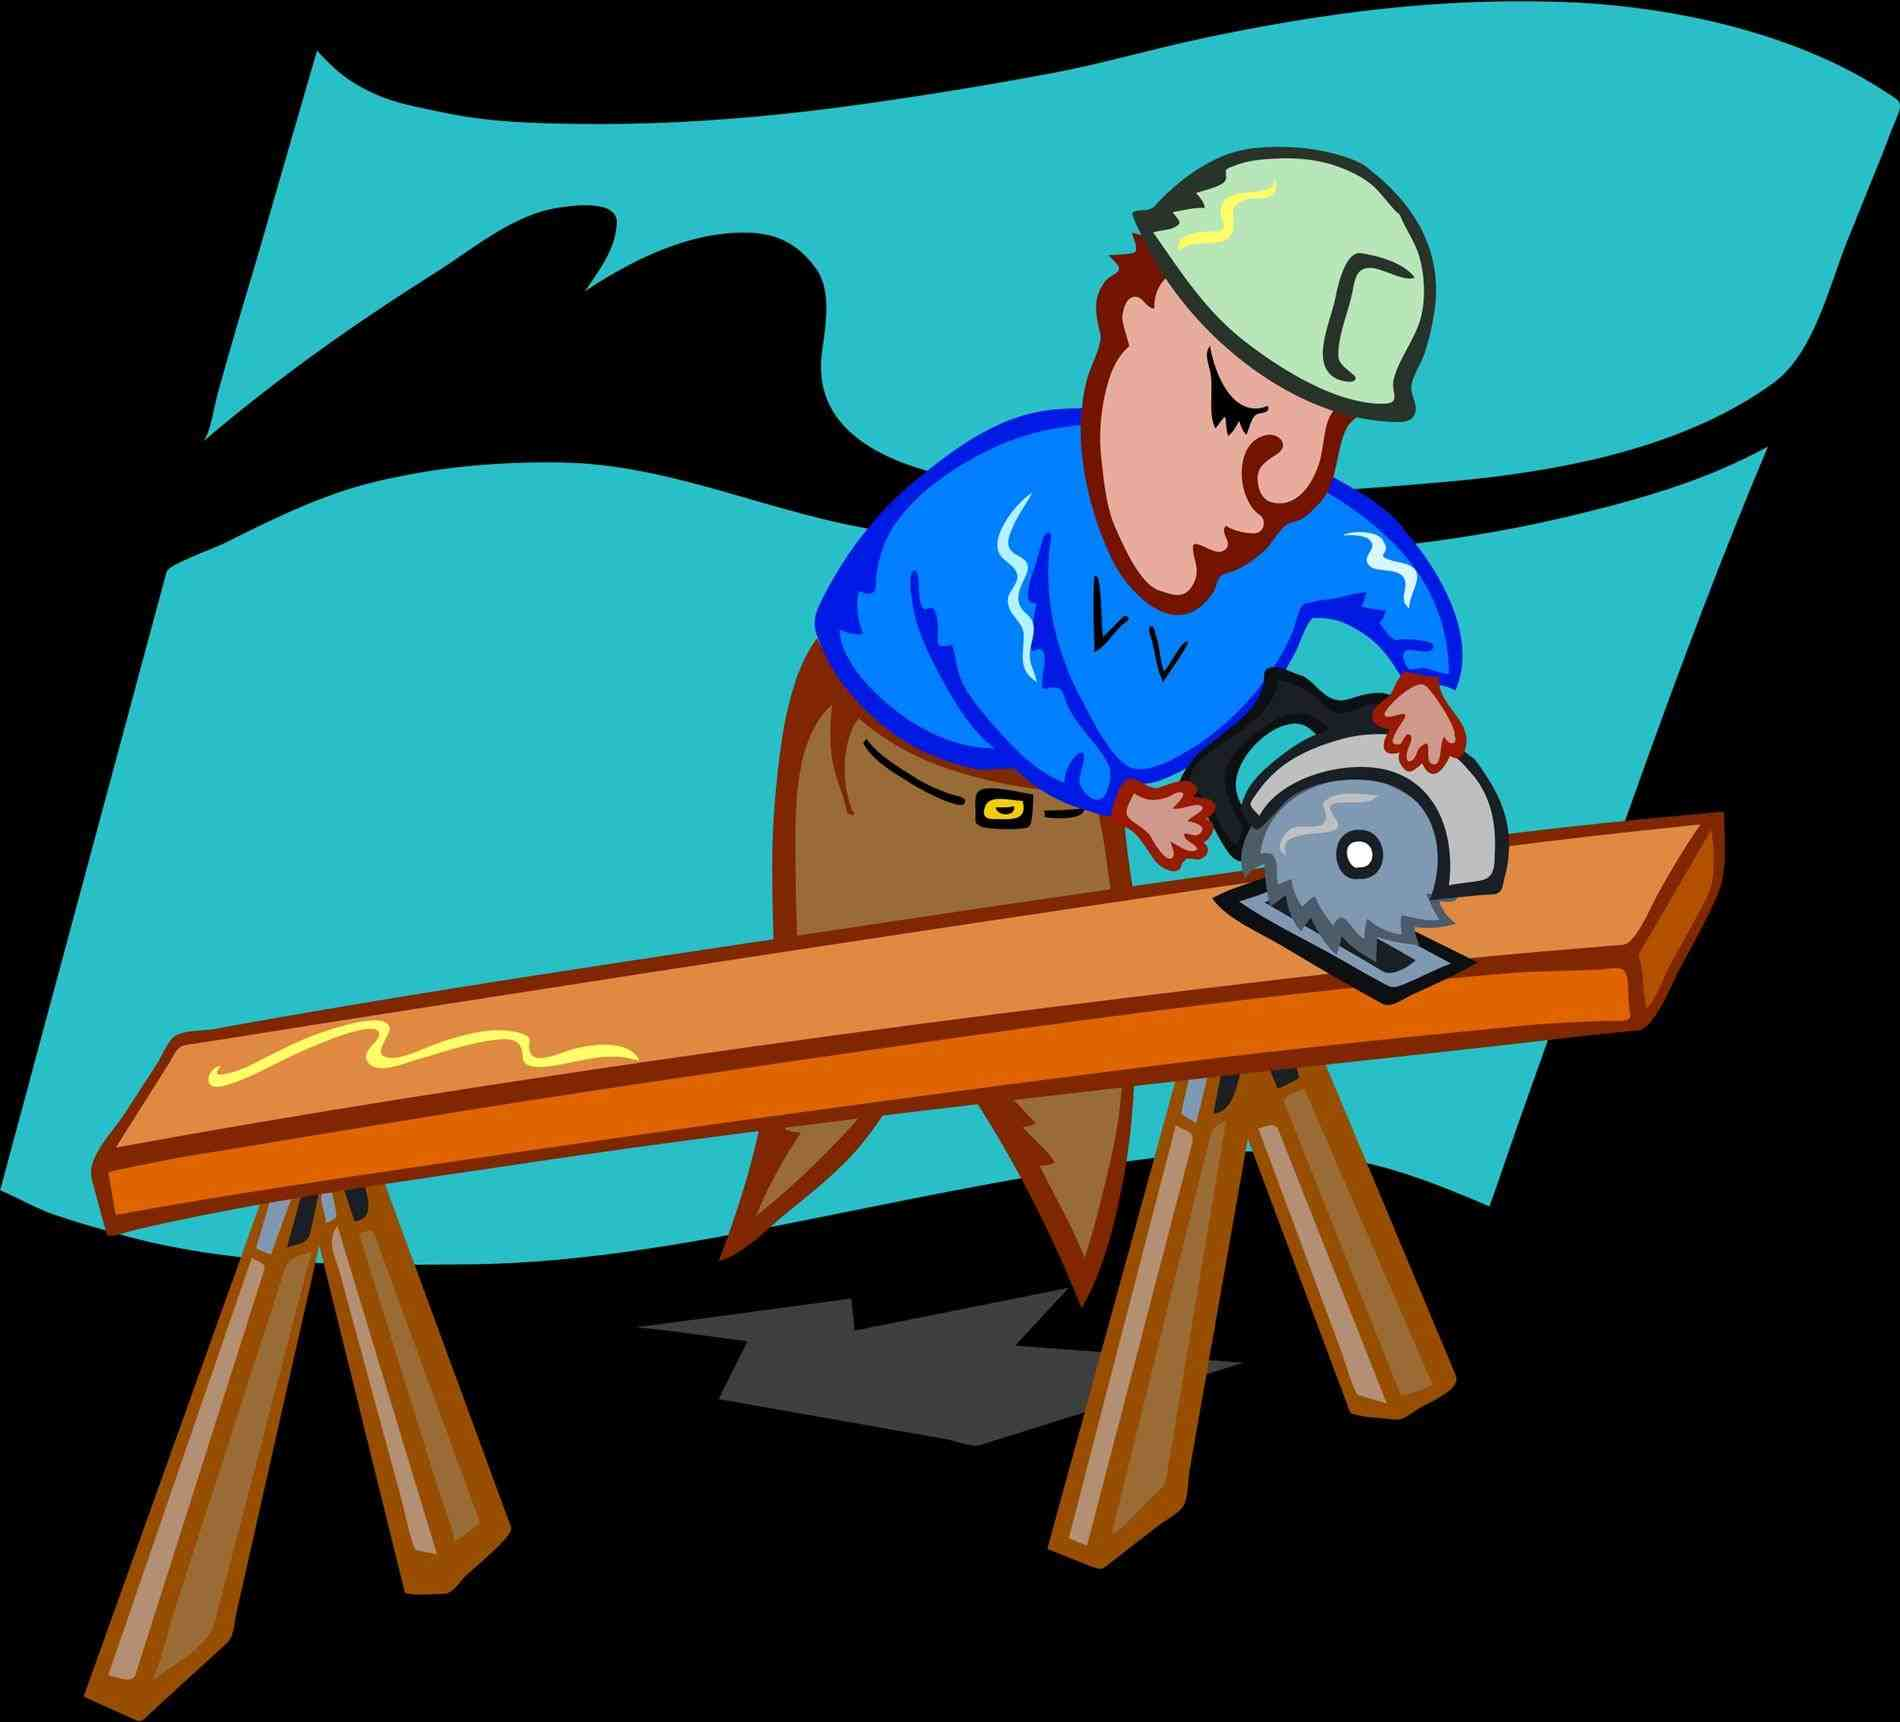 Carpentry clipart woodshop tool. The images collection of